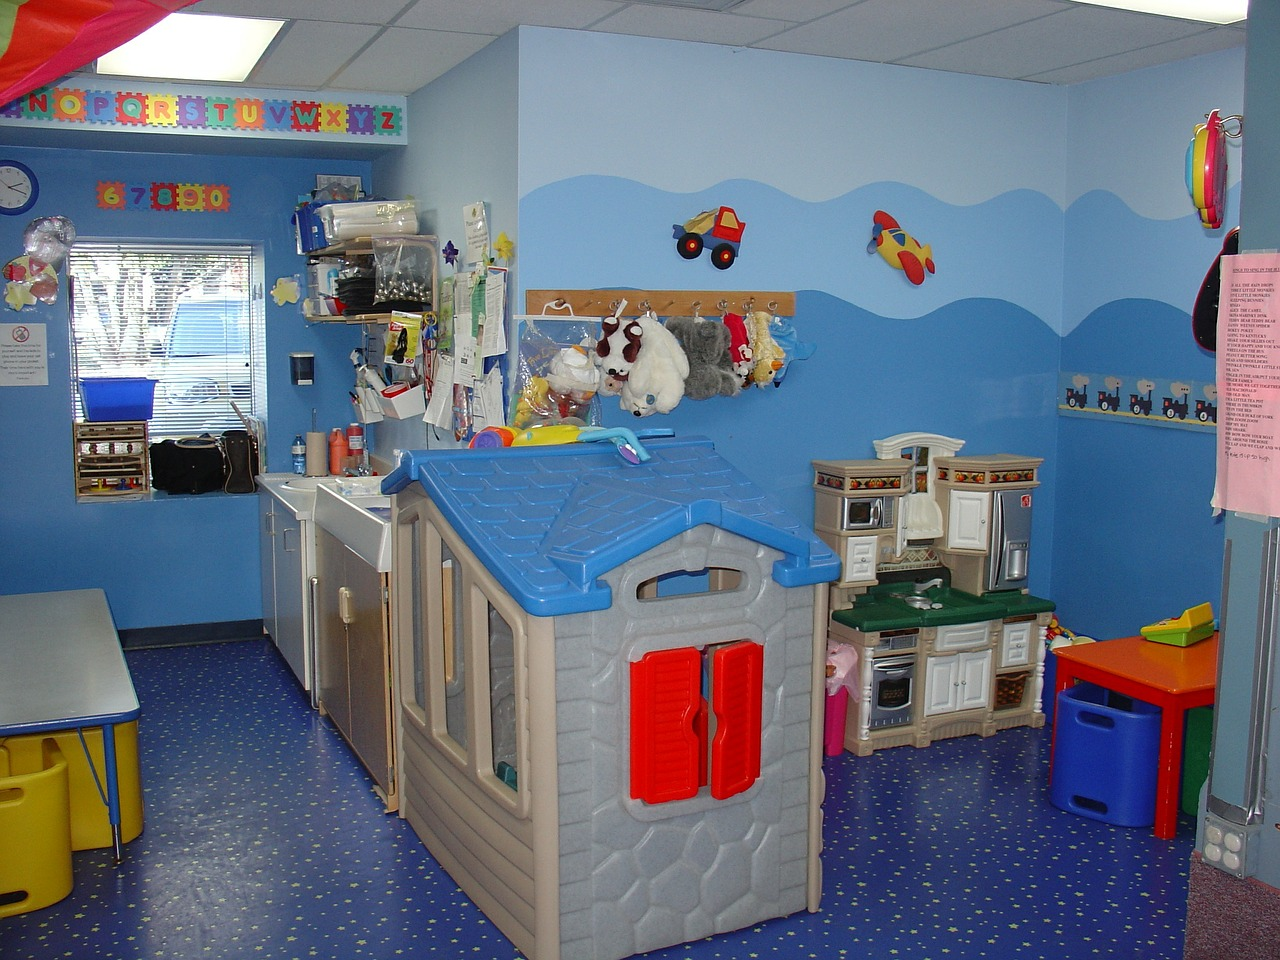 toddler-room-569199_1280